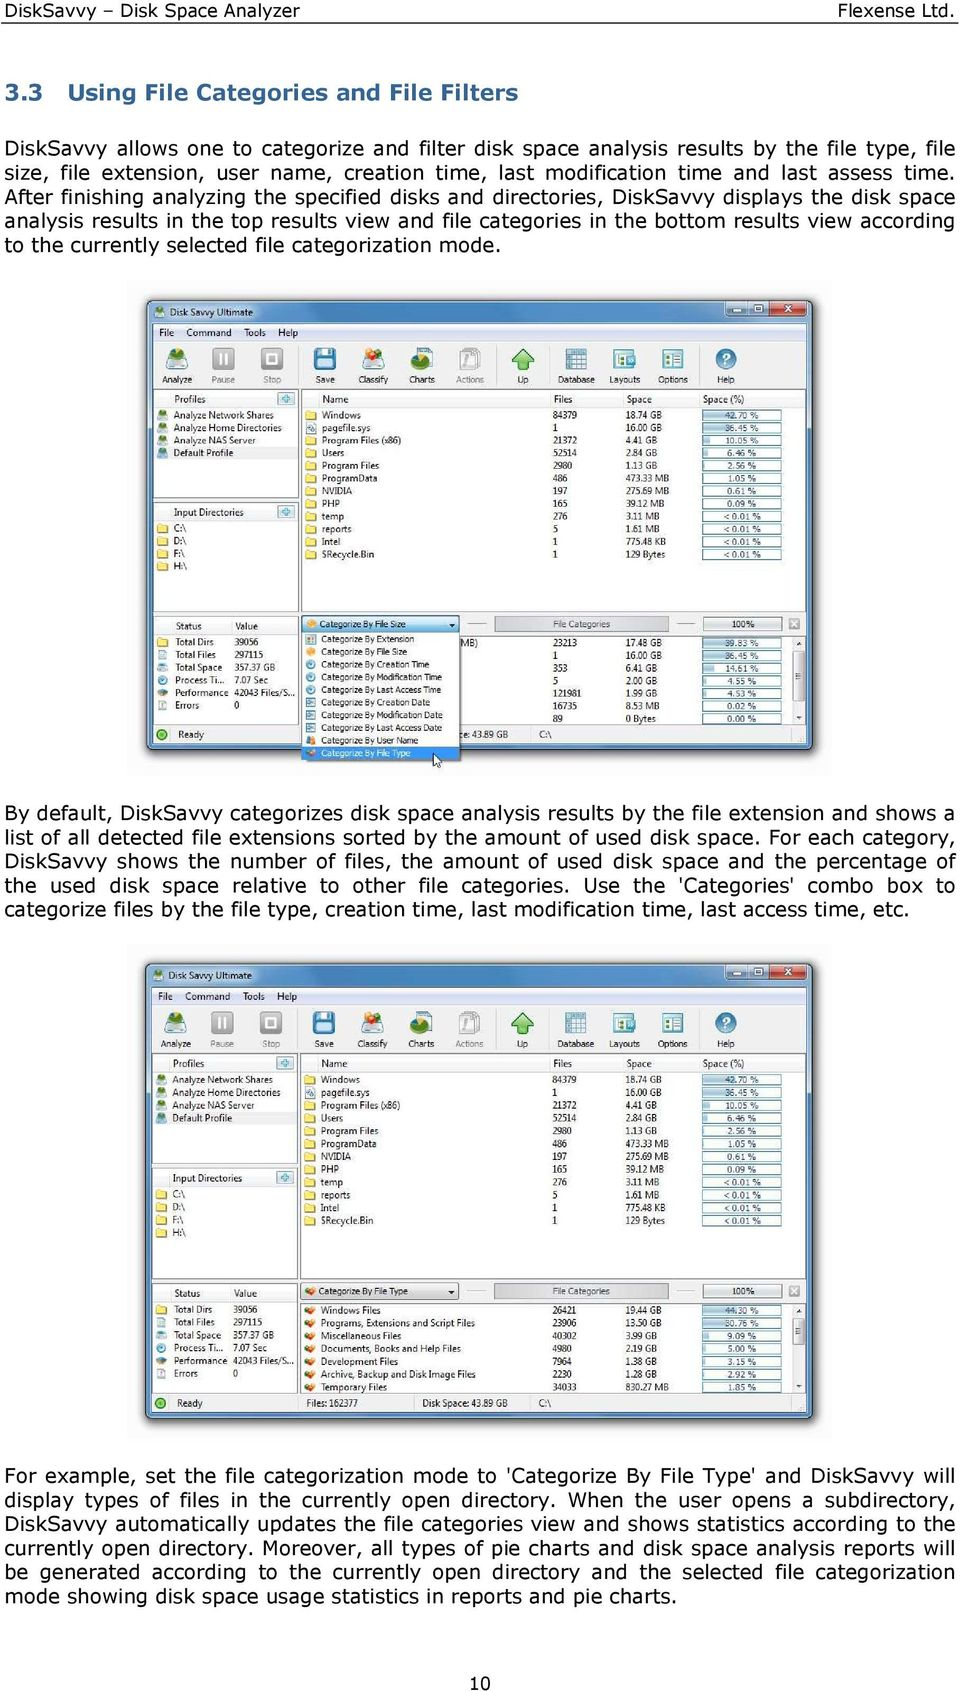 After finishing analyzing the specified disks and directories, DiskSavvy displays the disk space analysis results in the top results view and file categories in the bottom results view according to